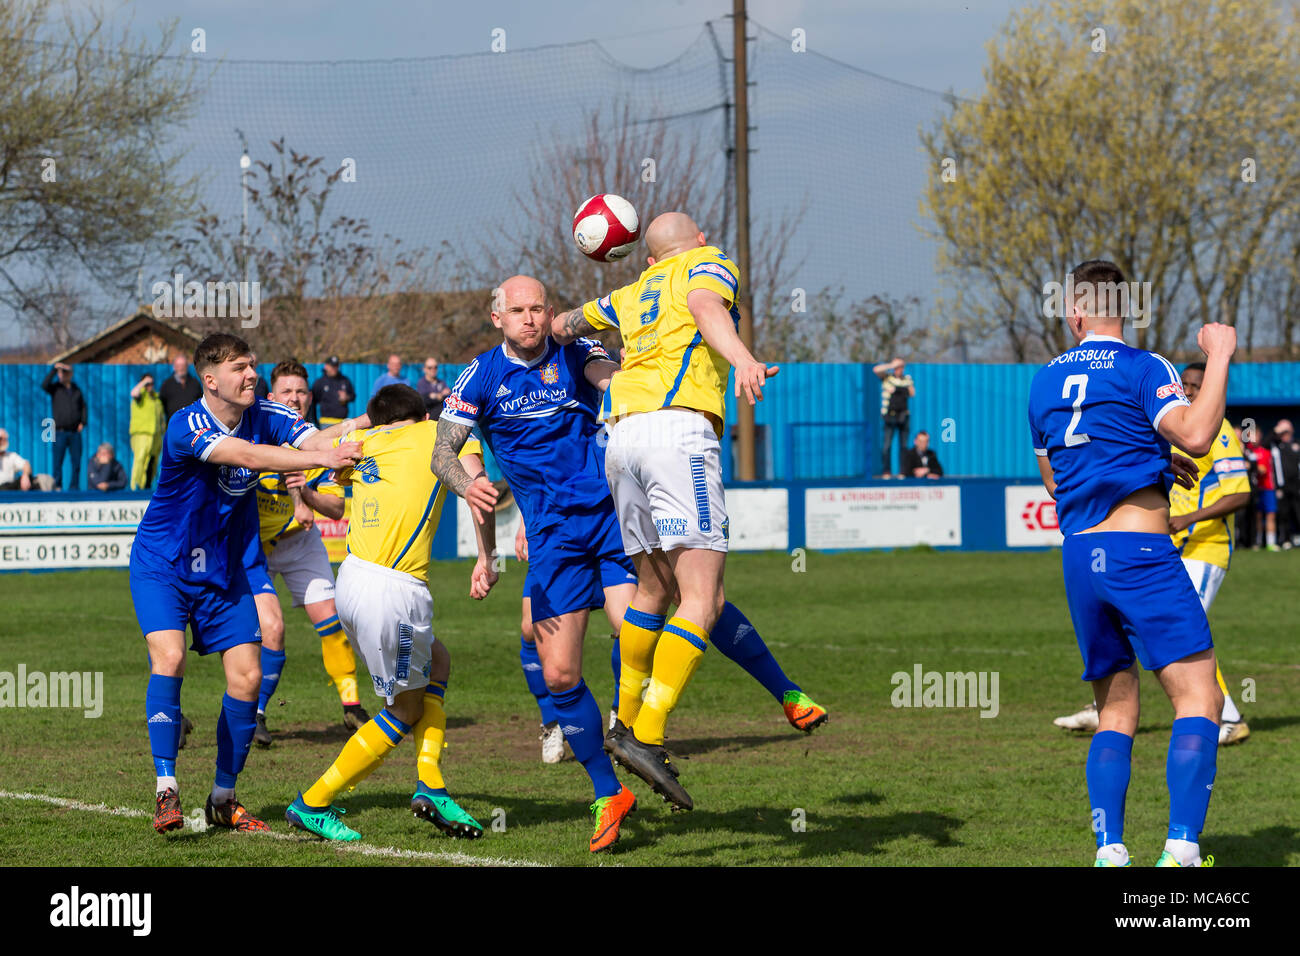 Farsley, UK, 14 April 2018. Warrington Town defender, Jack Higgins, heads the ball into the goalmouth of Farsley Celtic during Warrington's 2-0 win on Saturday 14 April 2018 in the top of the table clash near the end of the season Credit: John Hopkins/Alamy Live News Credit: John Hopkins/Alamy Live News - Stock Image